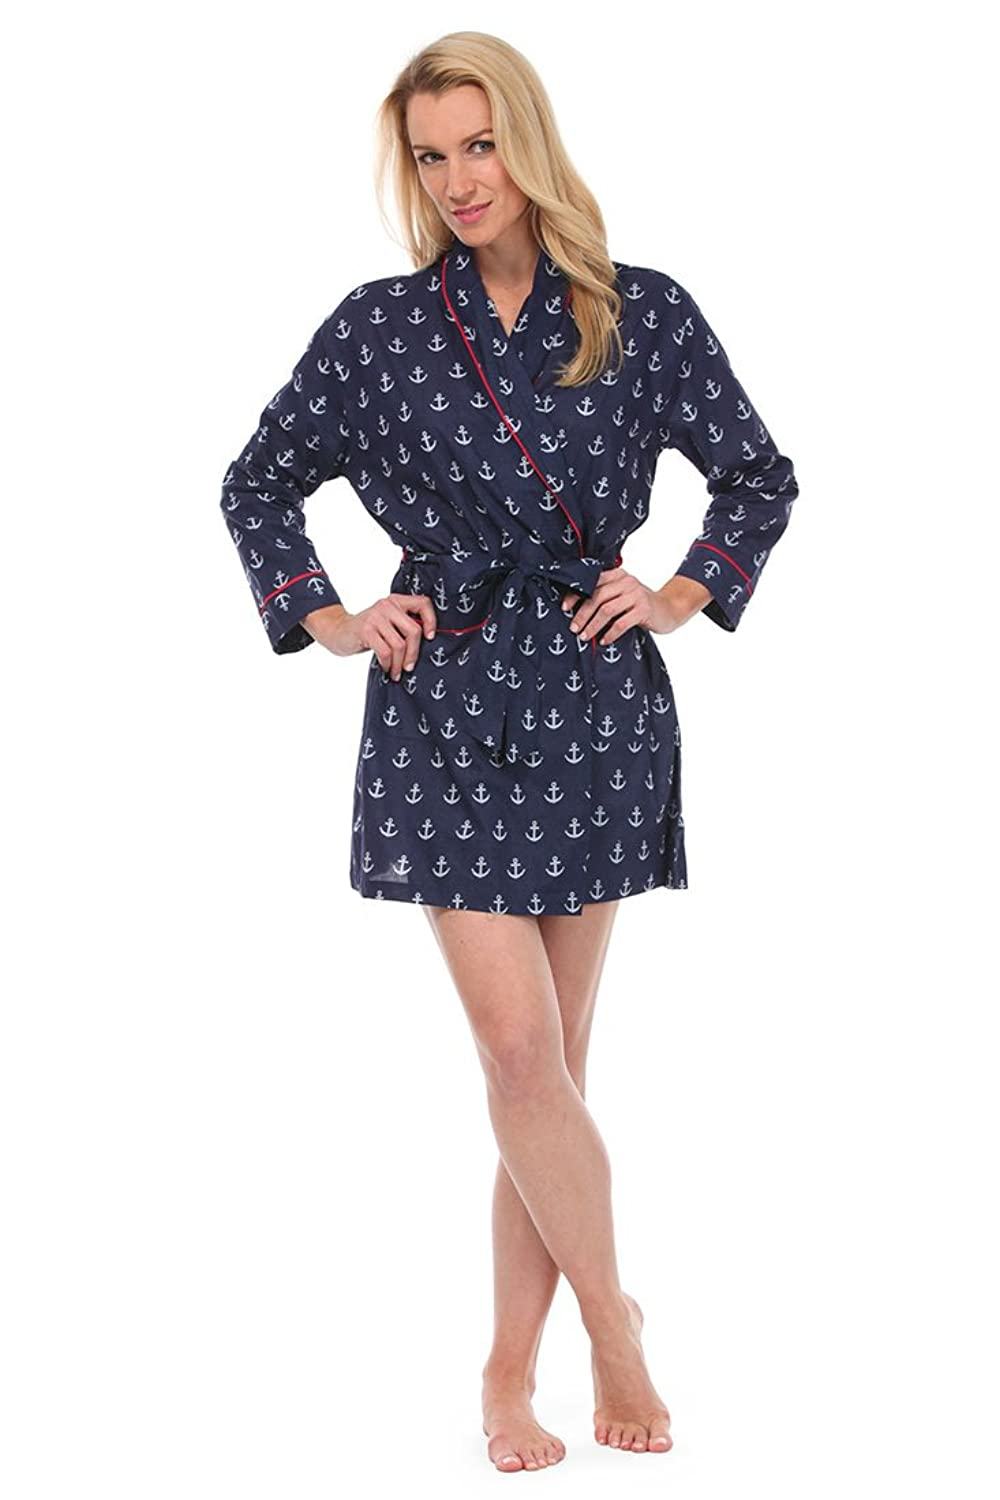 008e485097 Malabar bay womens anchors cotton short robe clothing jpg 1000x1500 Hopi  robe